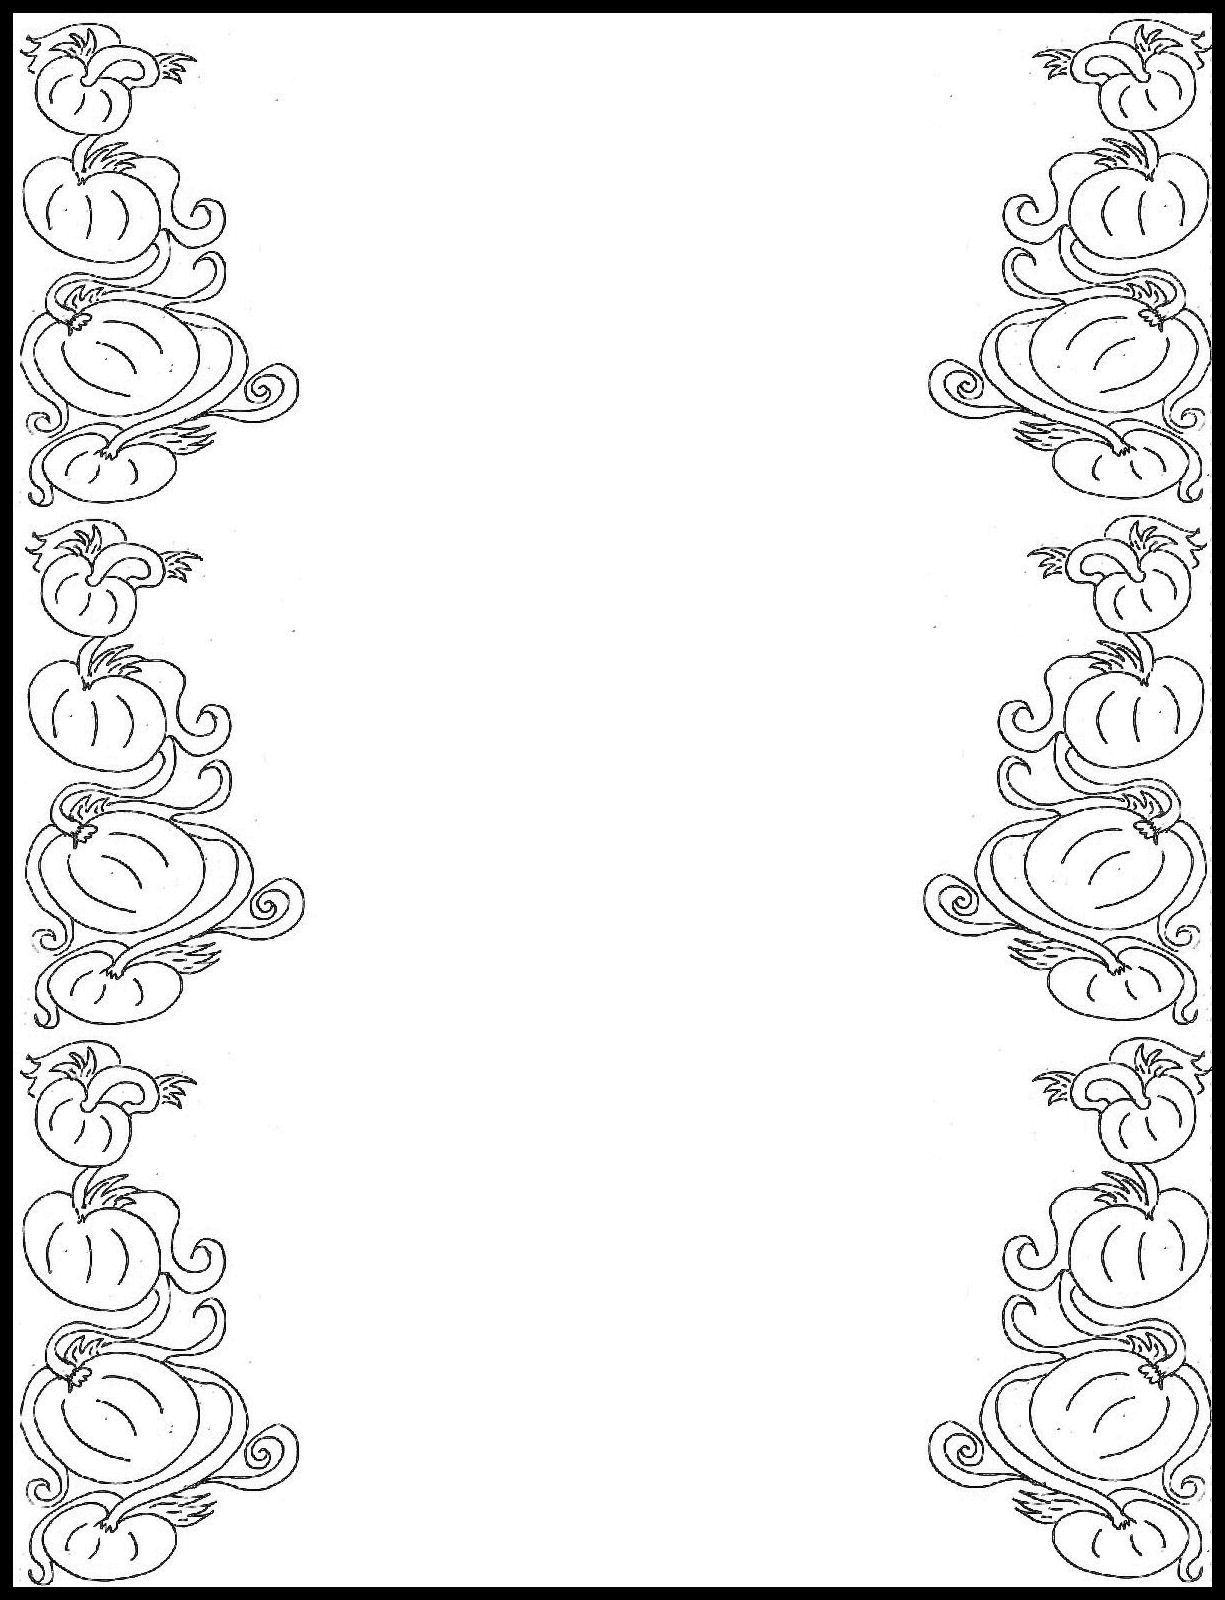 Free printable paper border designs christian clipart best for Landscape design paper